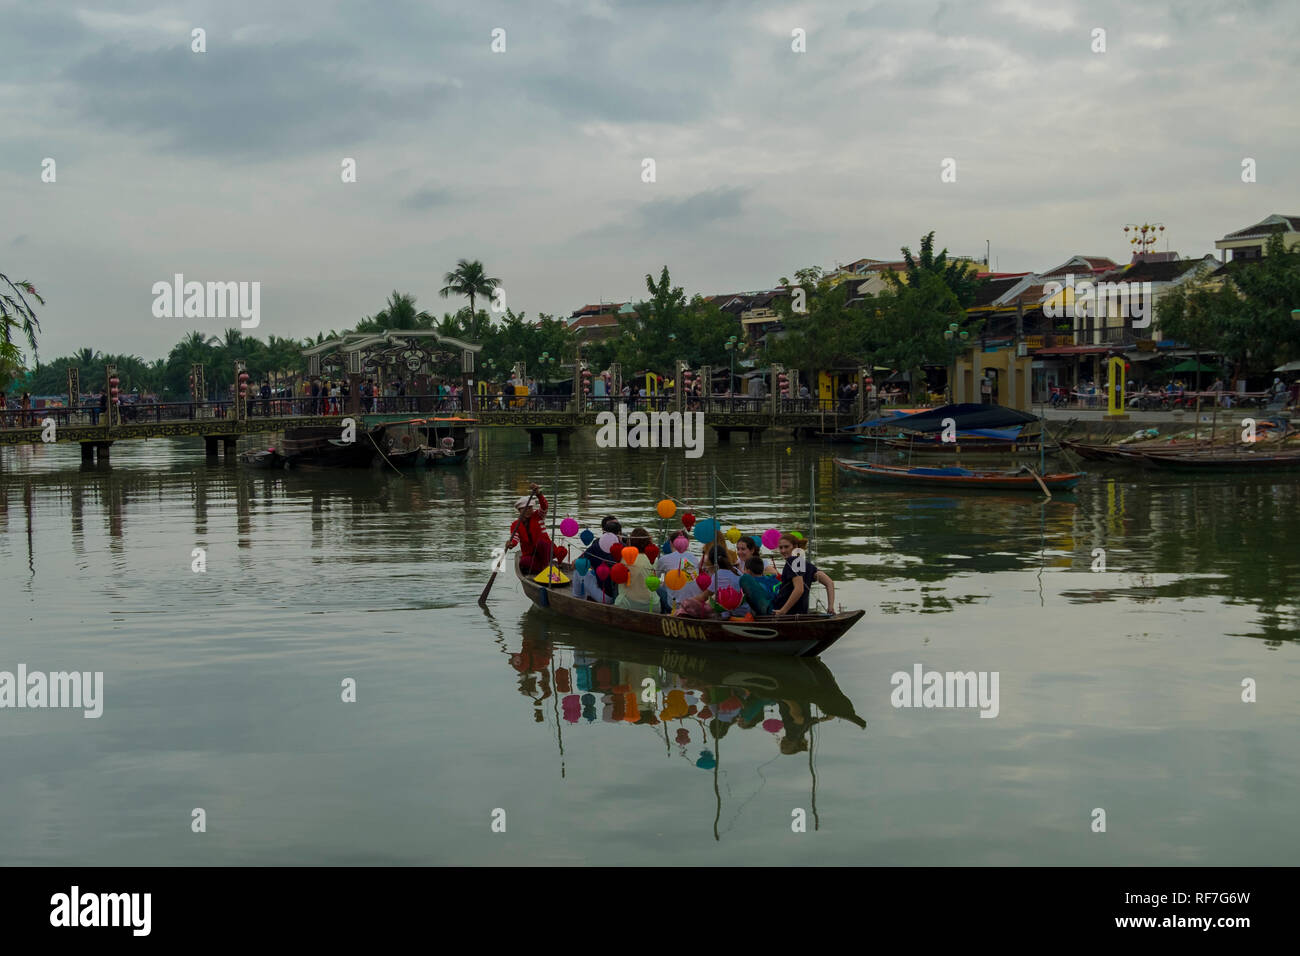 Small boat plying the Thu Bon River in Hoi An, Vietnam. - Stock Image